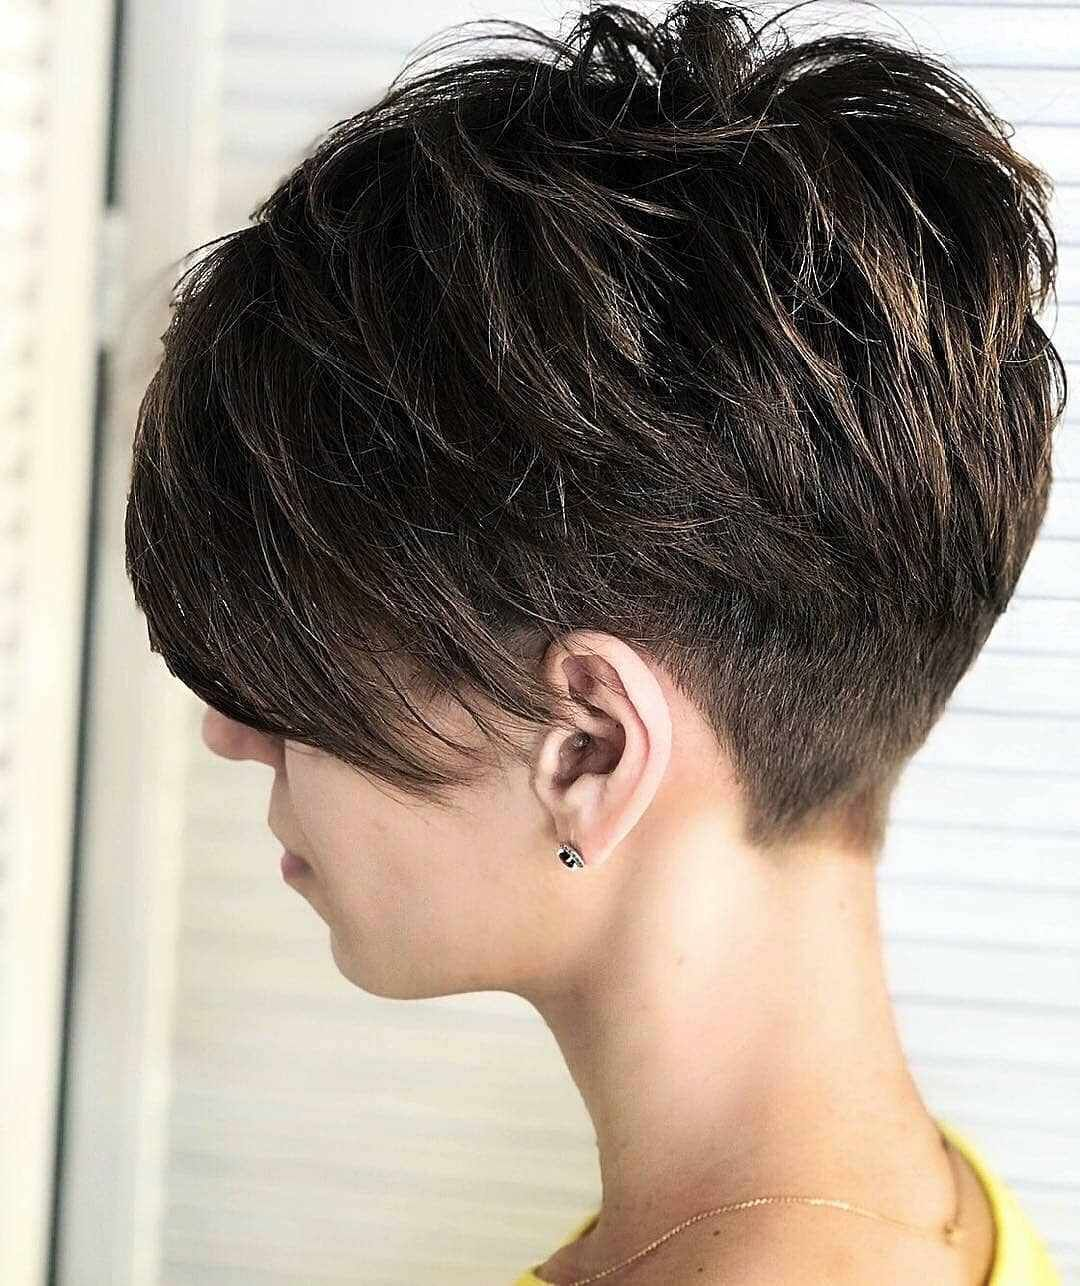 50 Best Pixie And Bob Cut Hairstyle Ideas 2019 » Hairstyles 2019 #shortpixiehaircuts